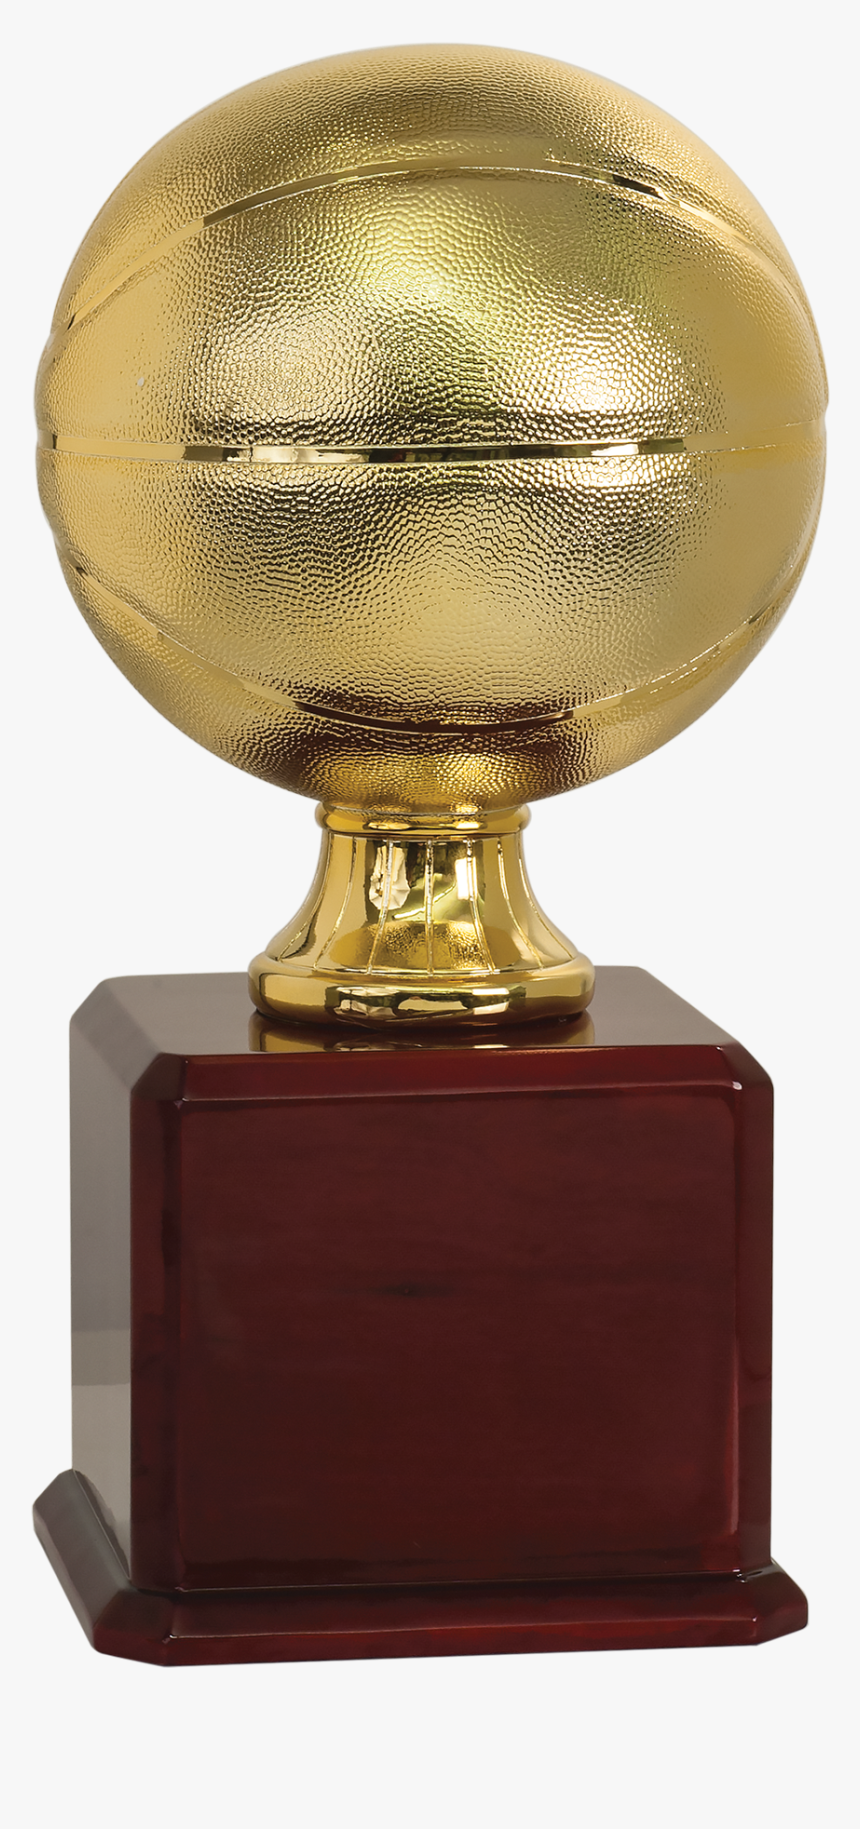 Basketball Trophy Png, Transparent Png, Free Download